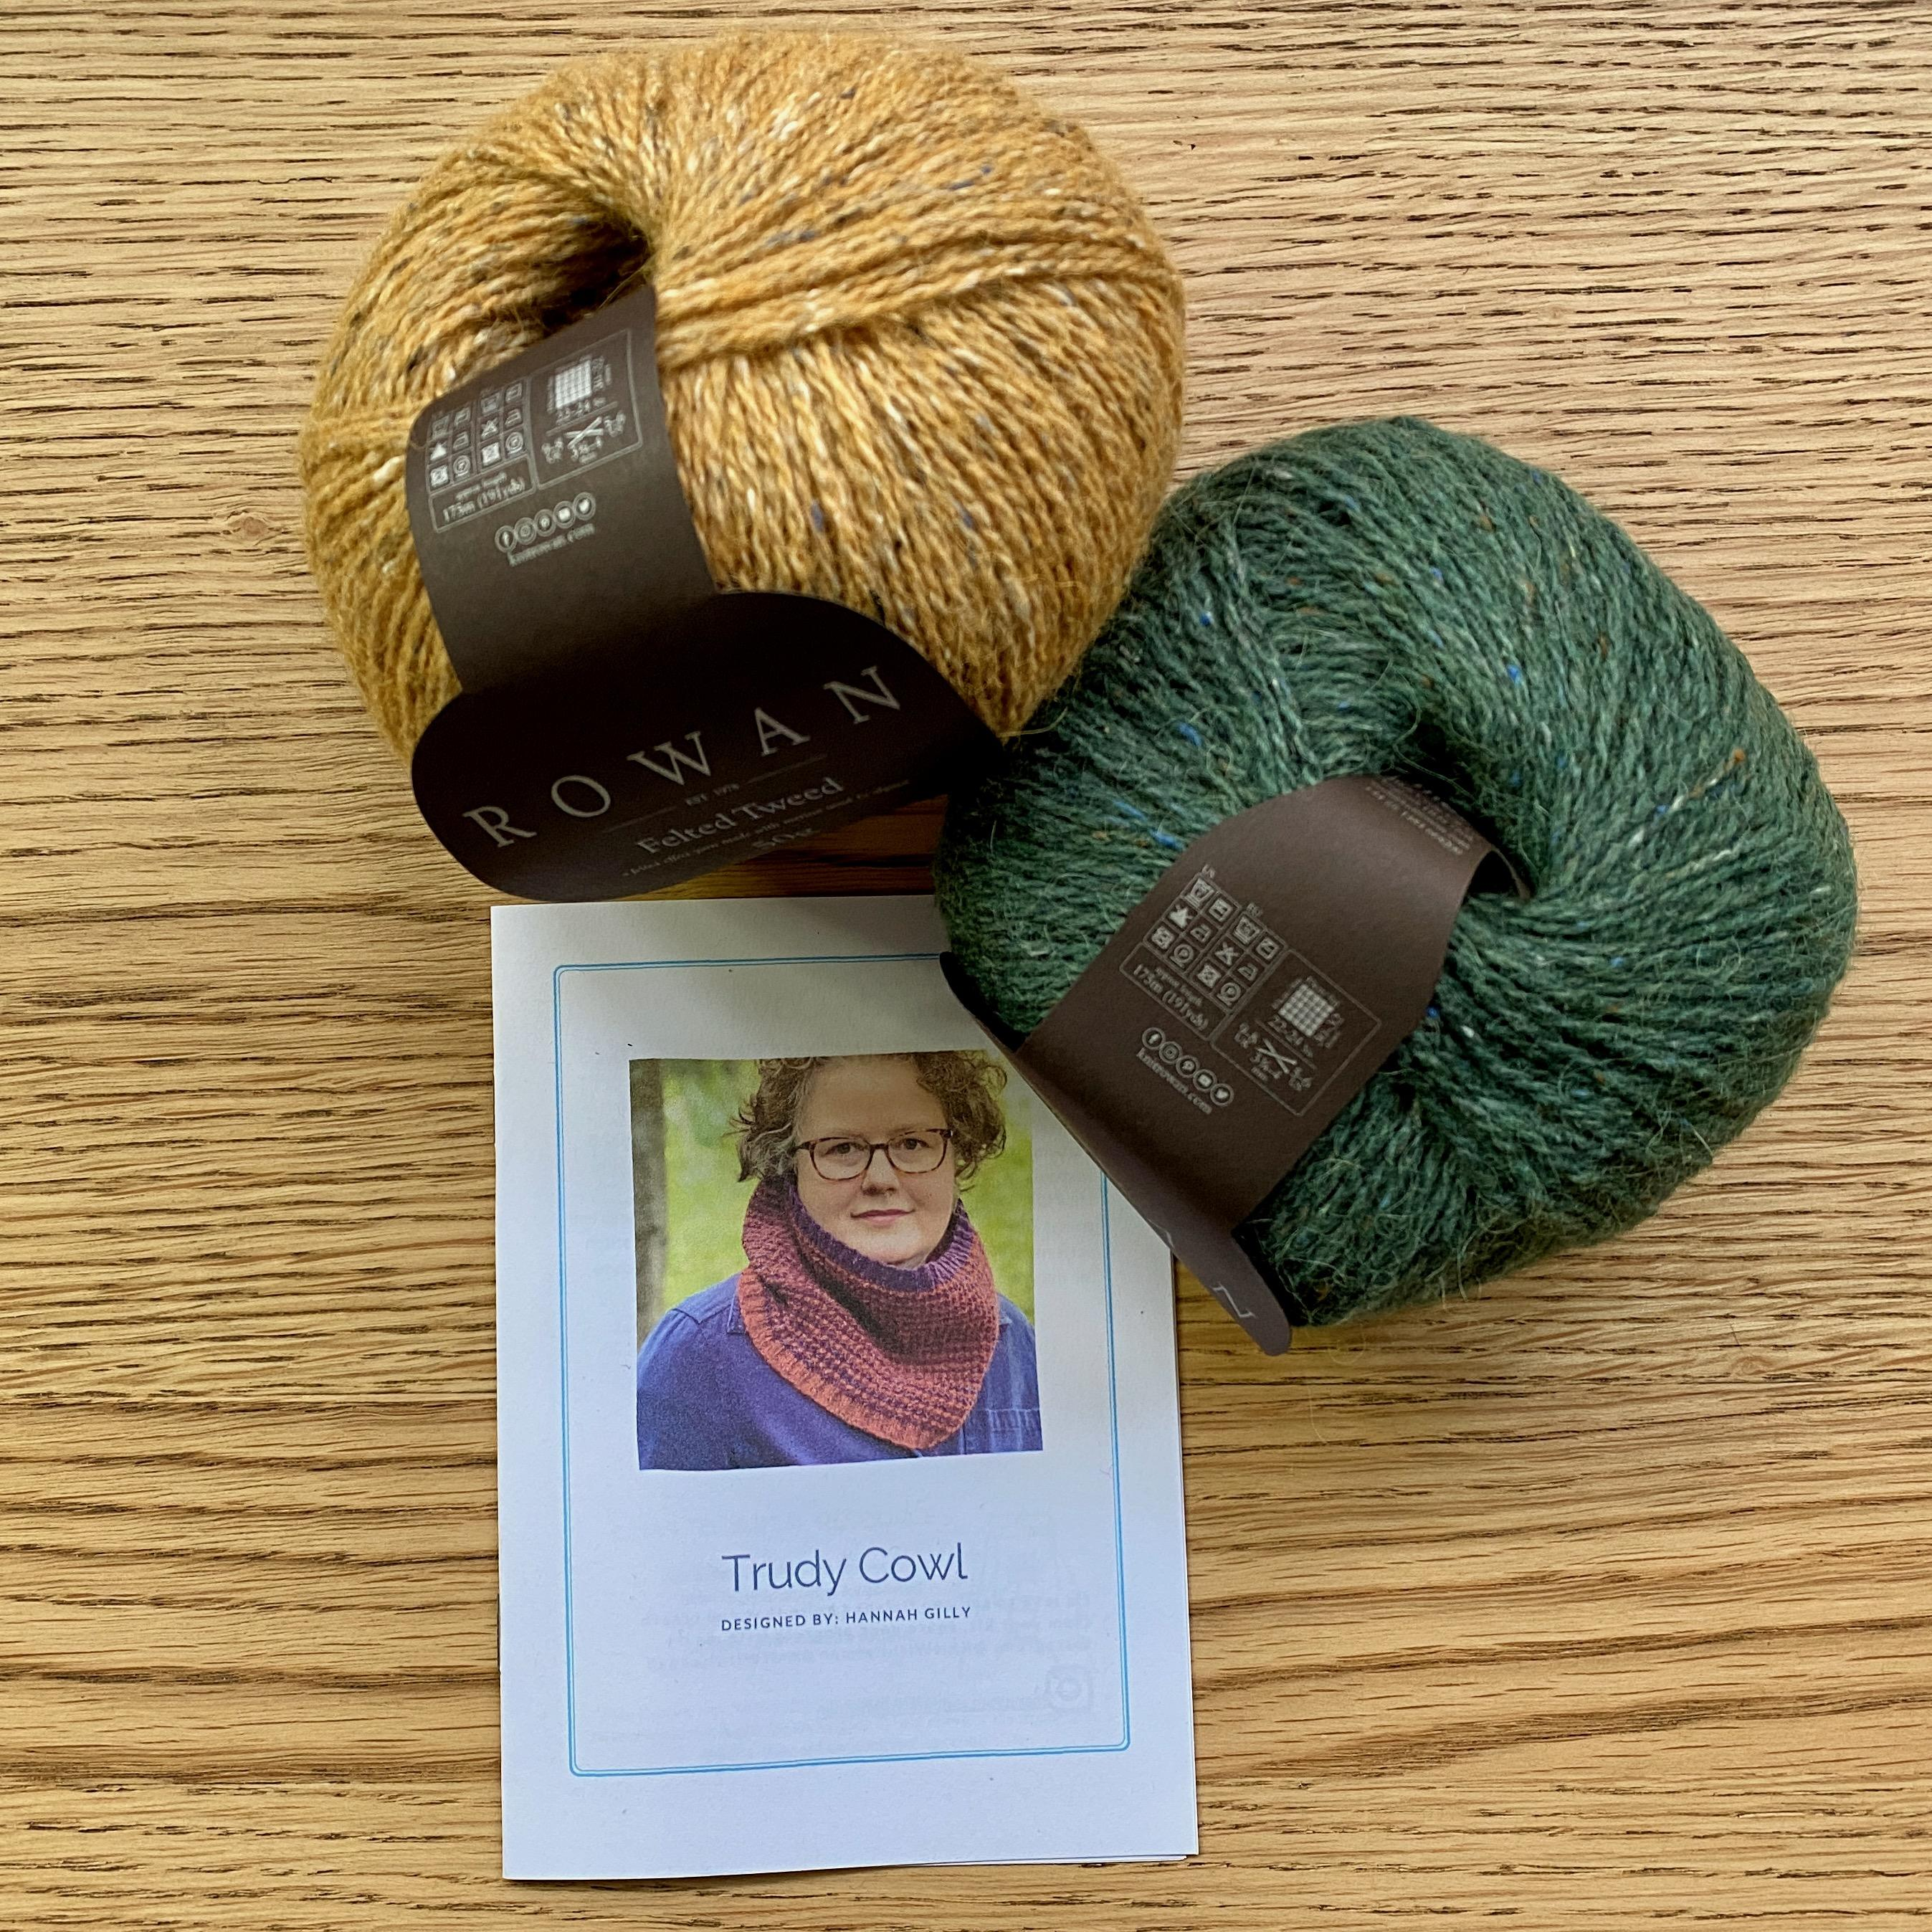 Trudy Cowl Knitting pattern on wooden table with 2 balls of yarn - cumin yellow and Pine green